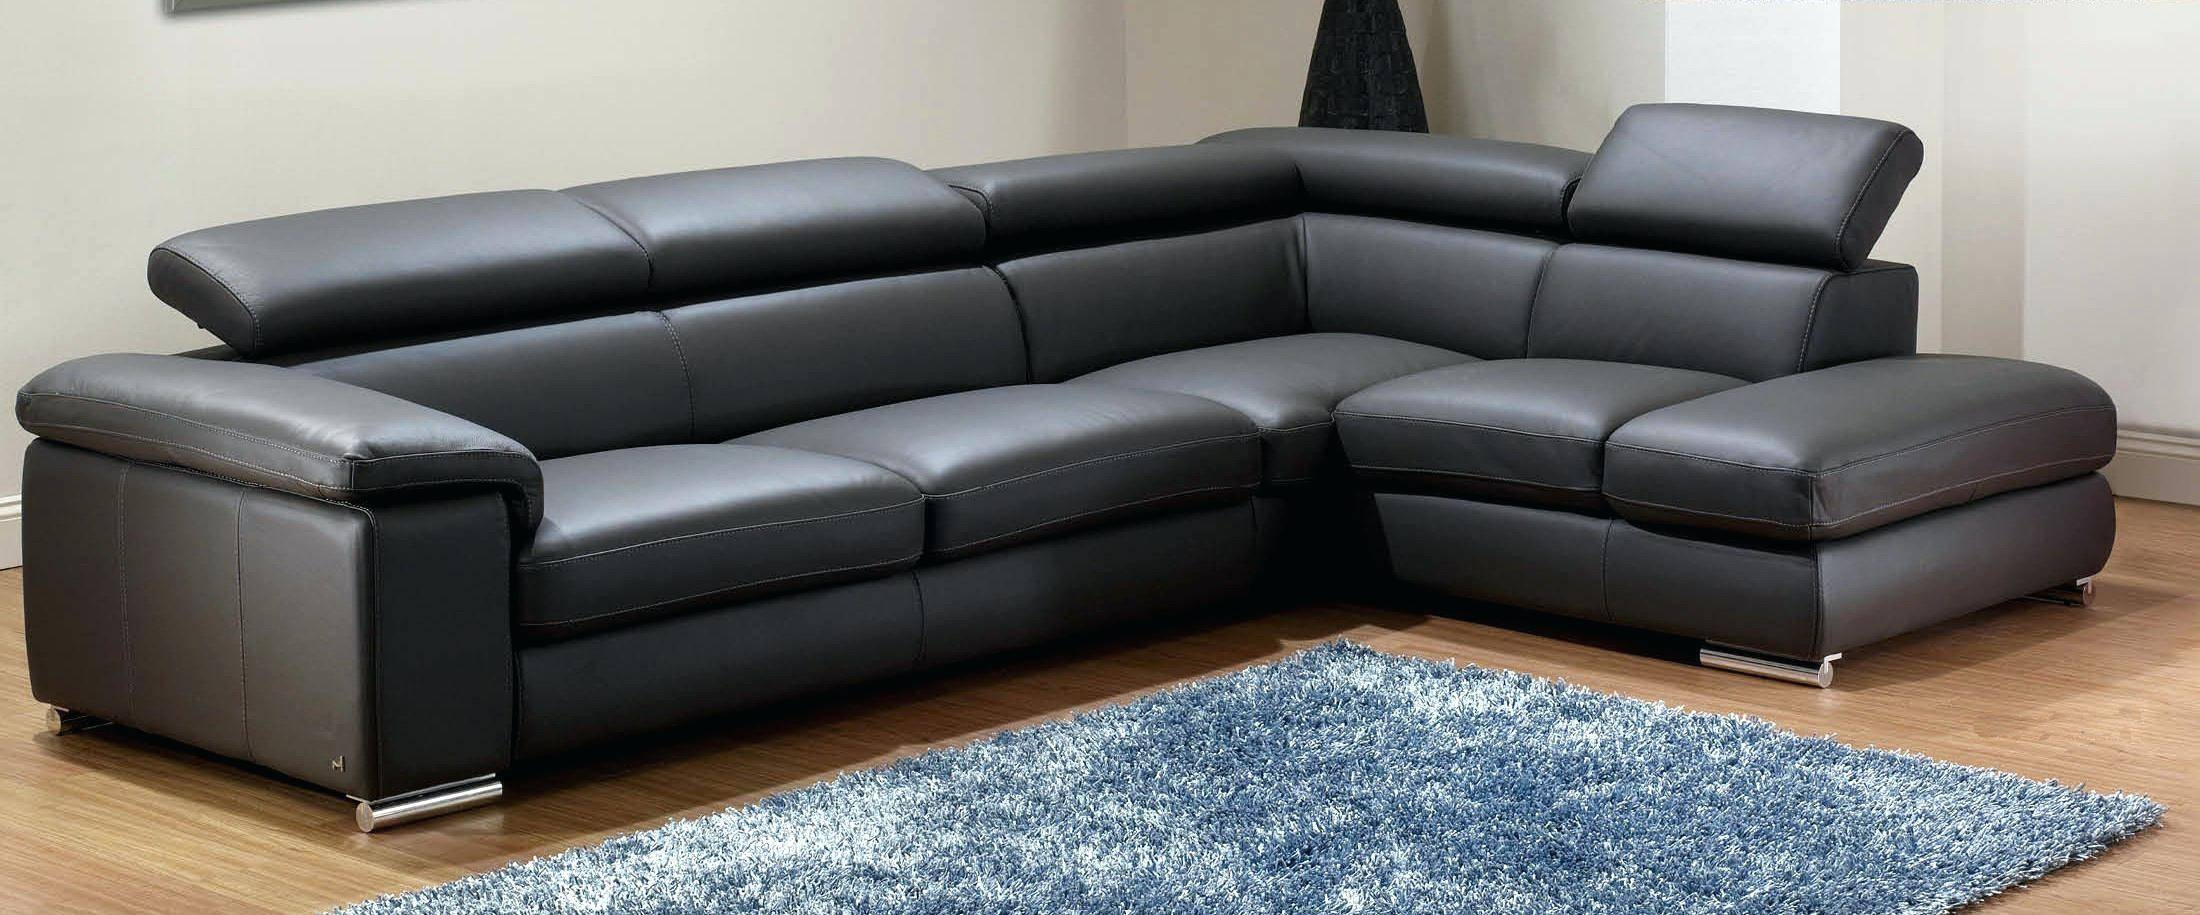 Black Leather Modern Sofa – Seedabook regarding Black Modern Couches (Image 3 of 15)